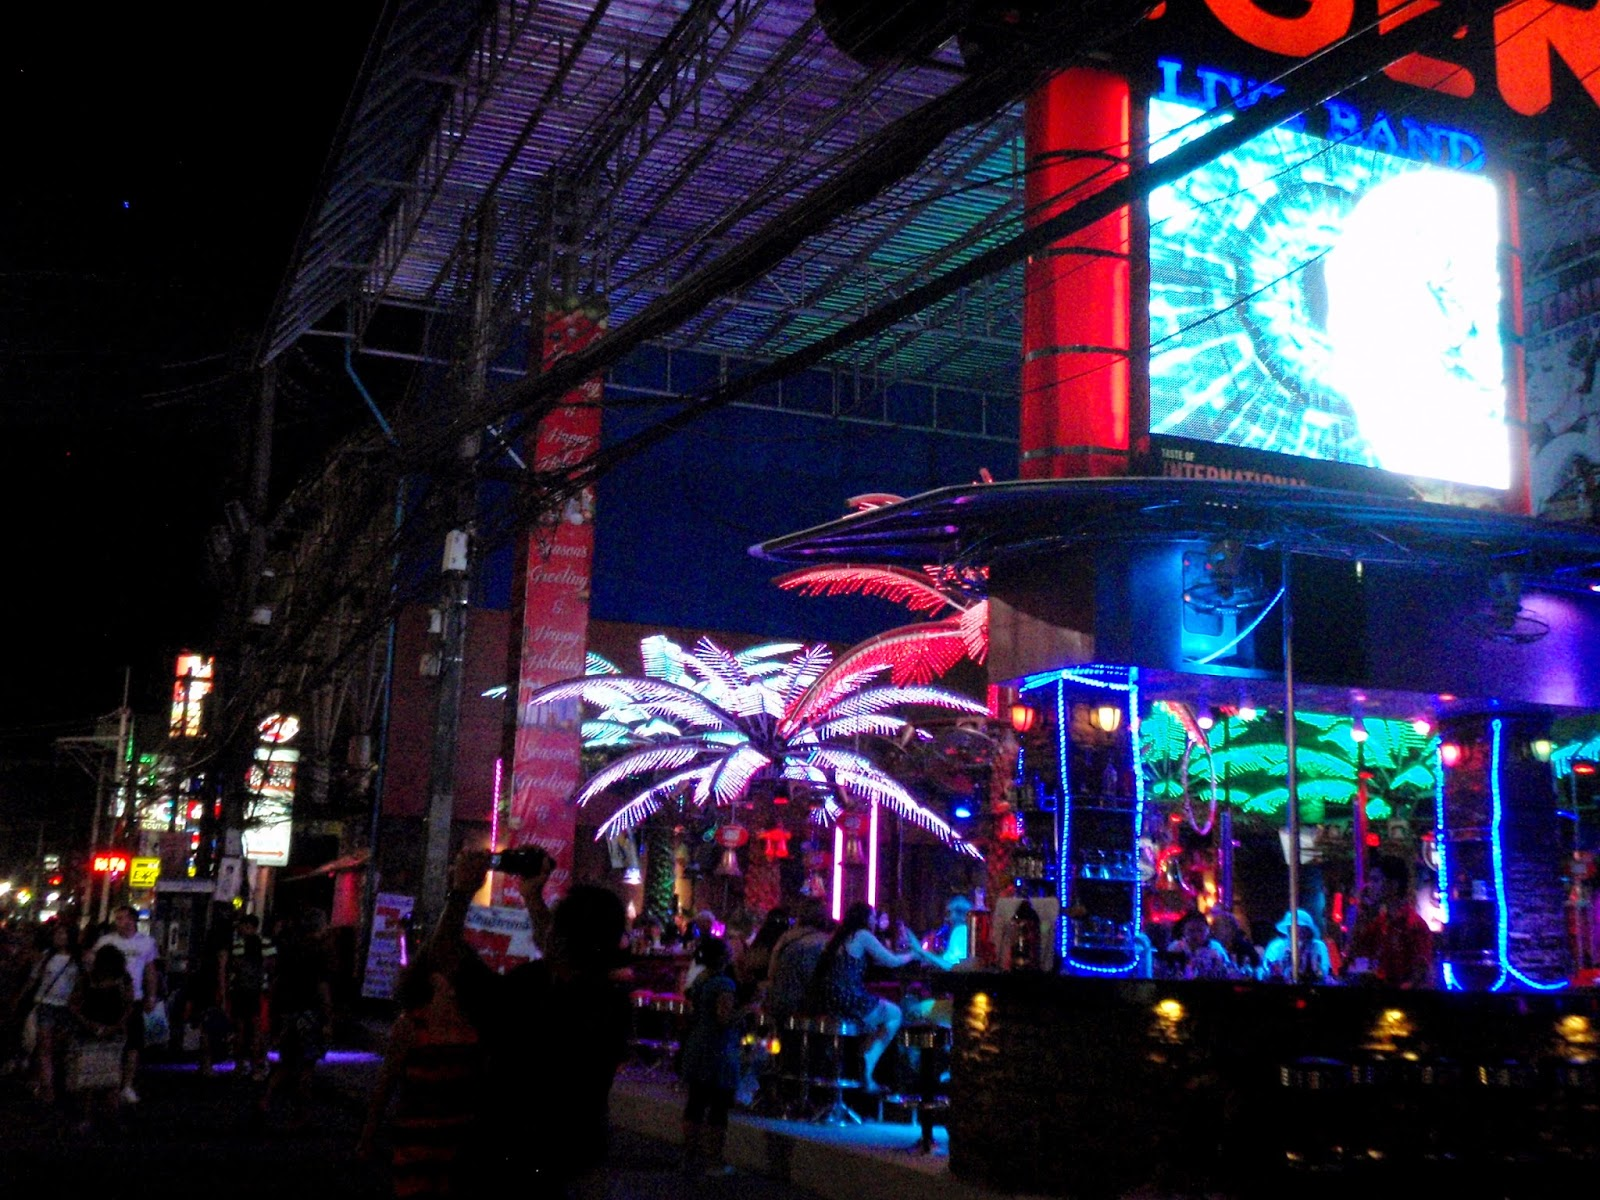 Bangla Road, Patong Beach, Phuket, Thailand